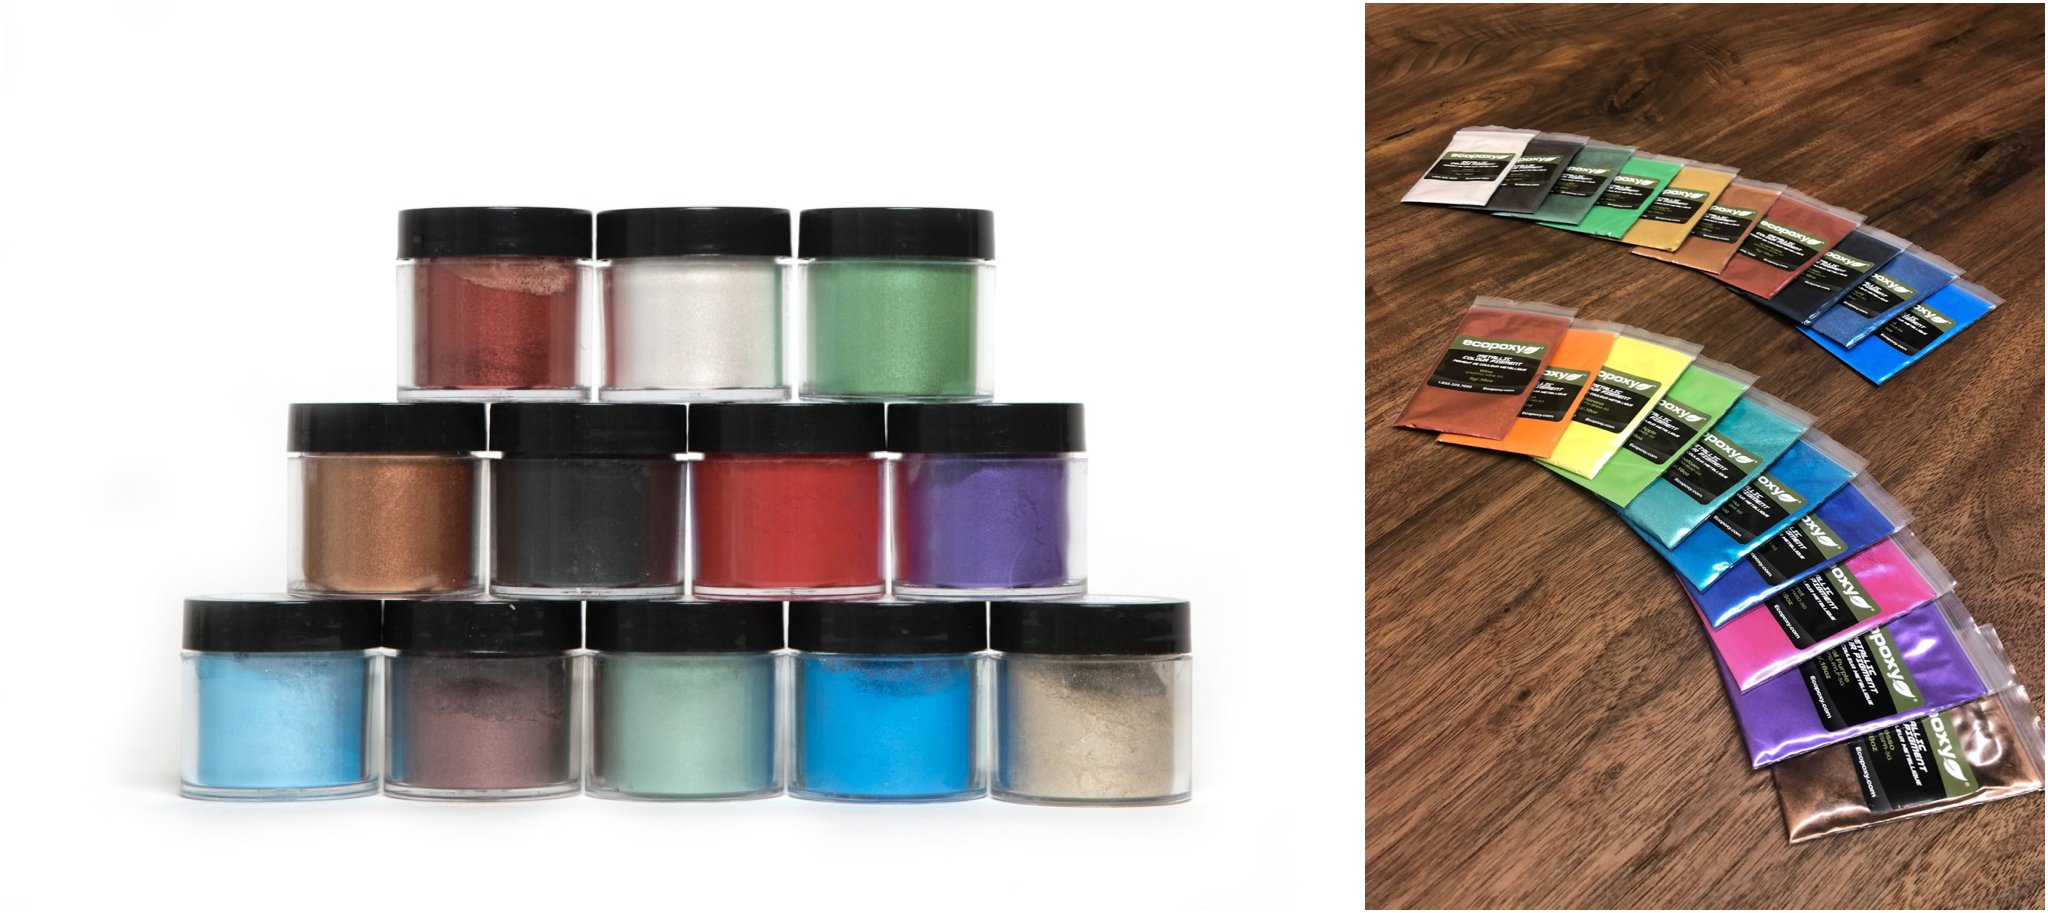 Metallic Pigments for working with epoxy